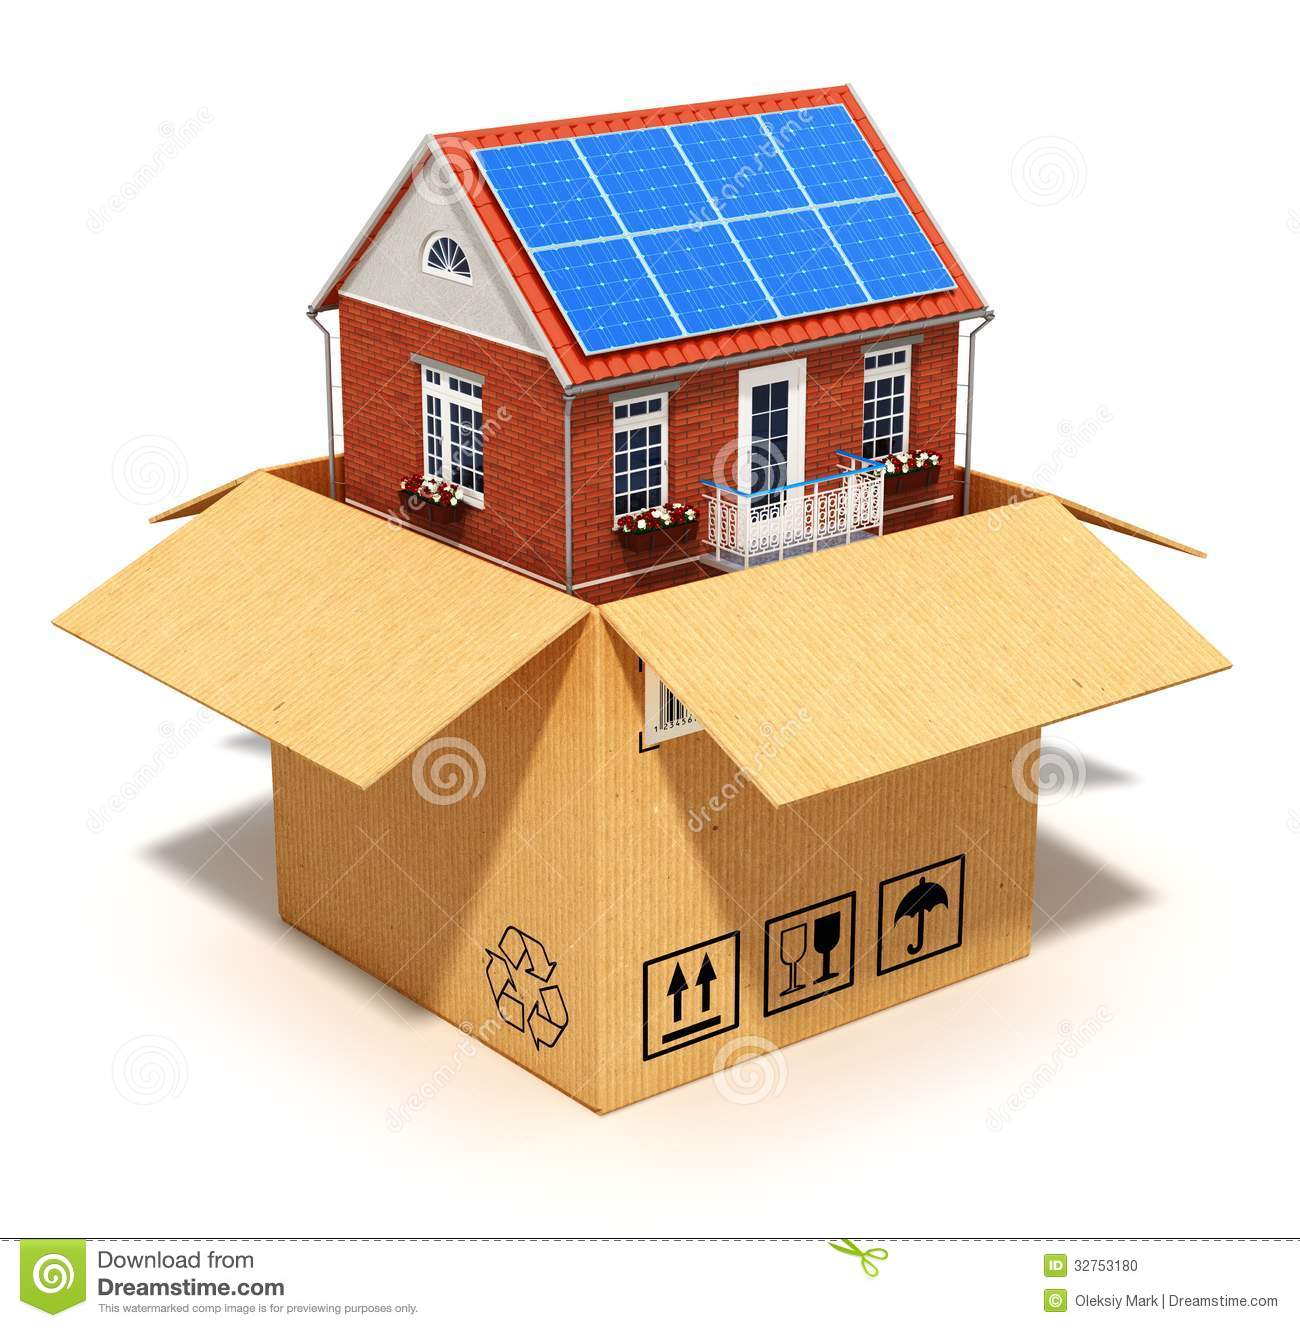 New house in cardboard box stock illustration image of for How to make a house from cardboard box